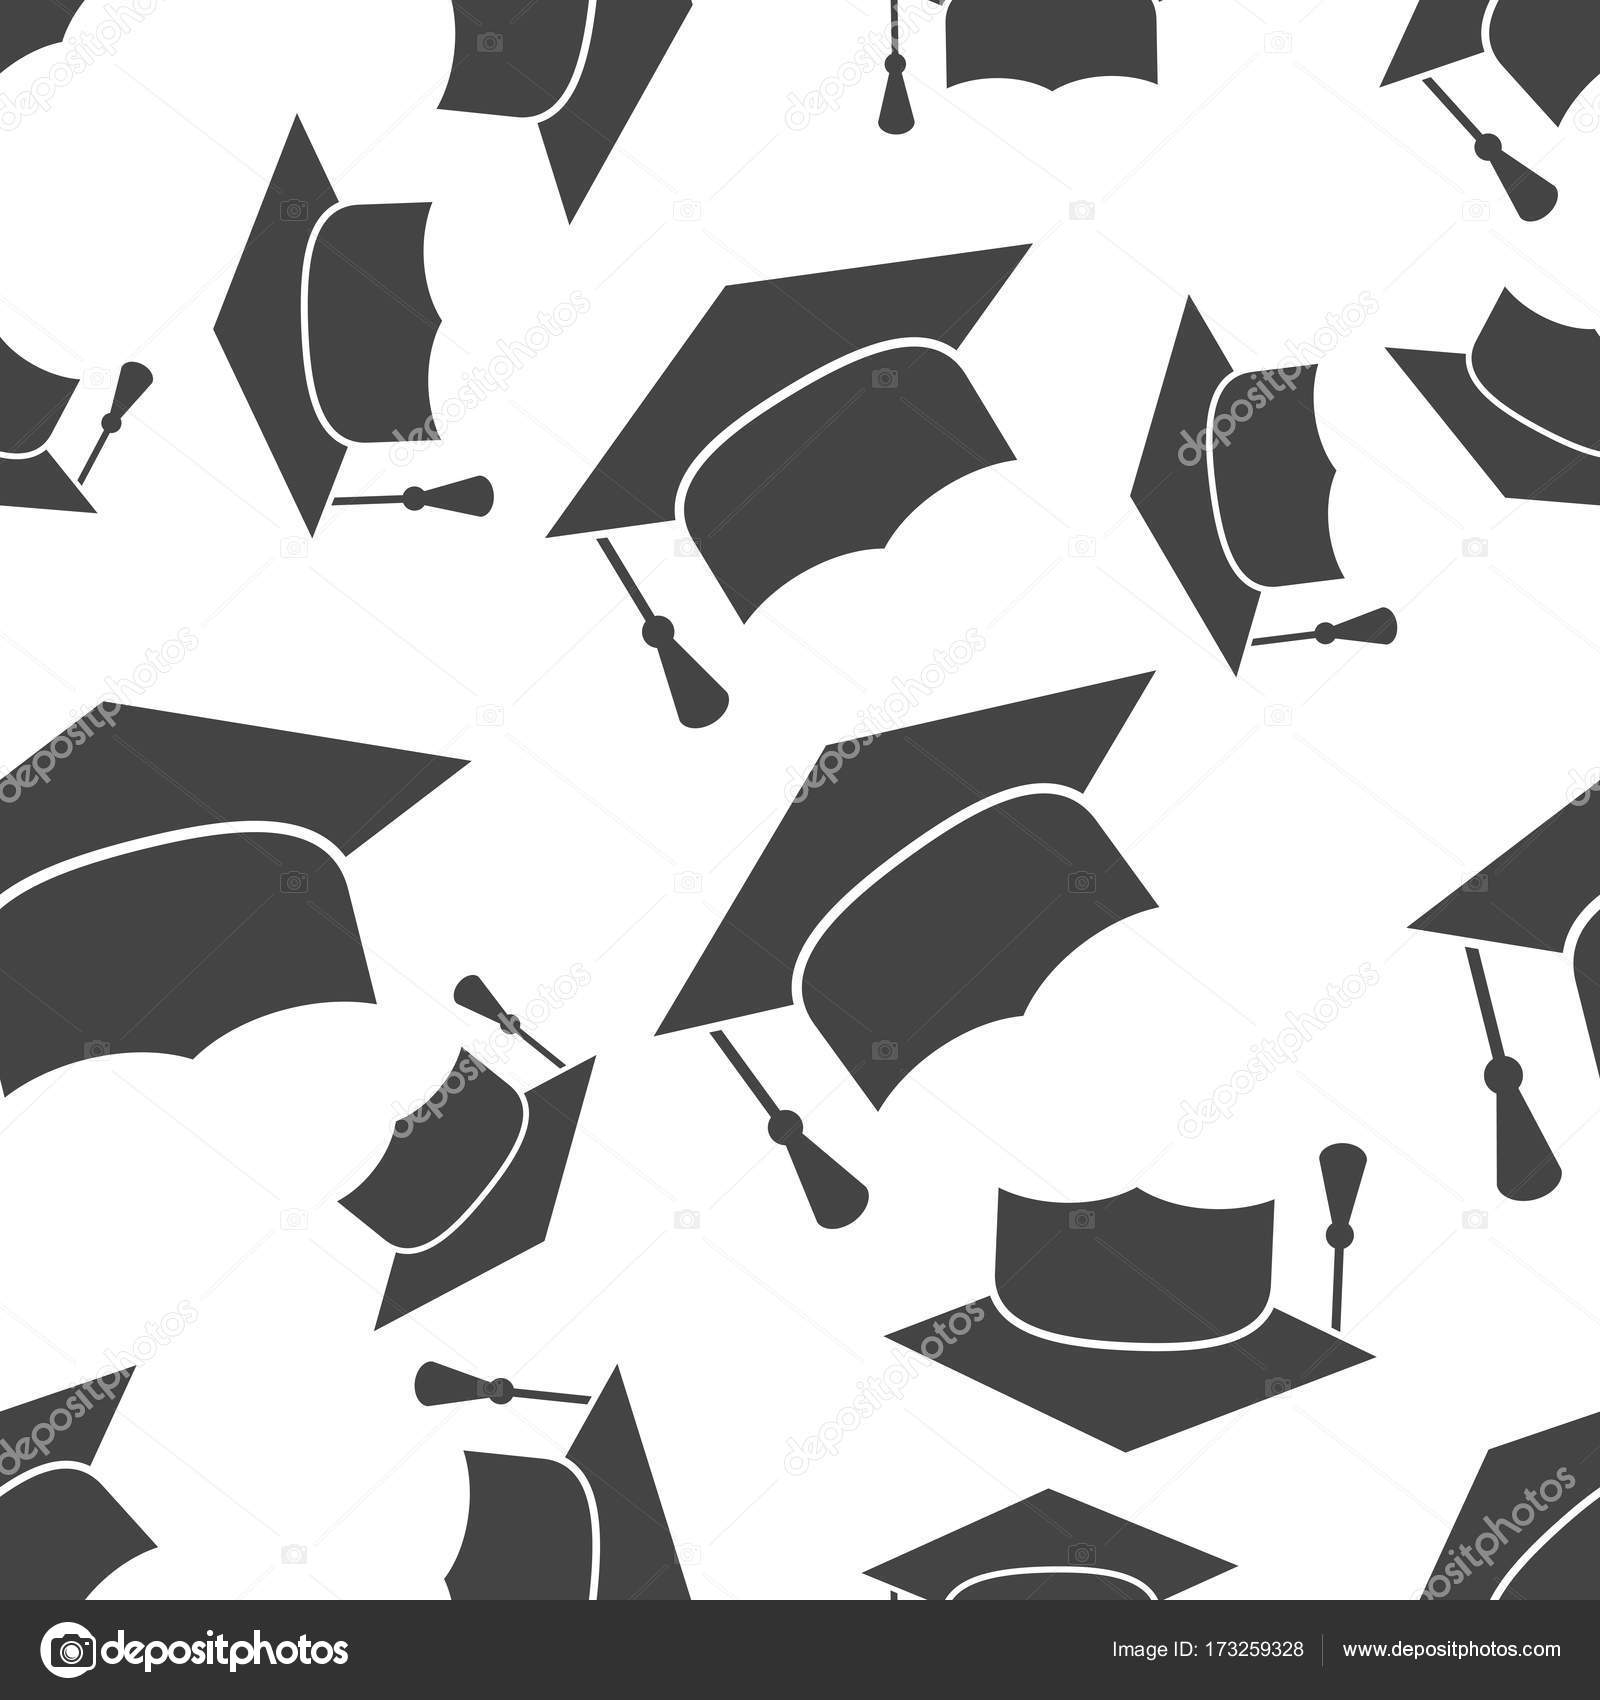 Graduation cap seamless pattern background icon. Business flat v ...